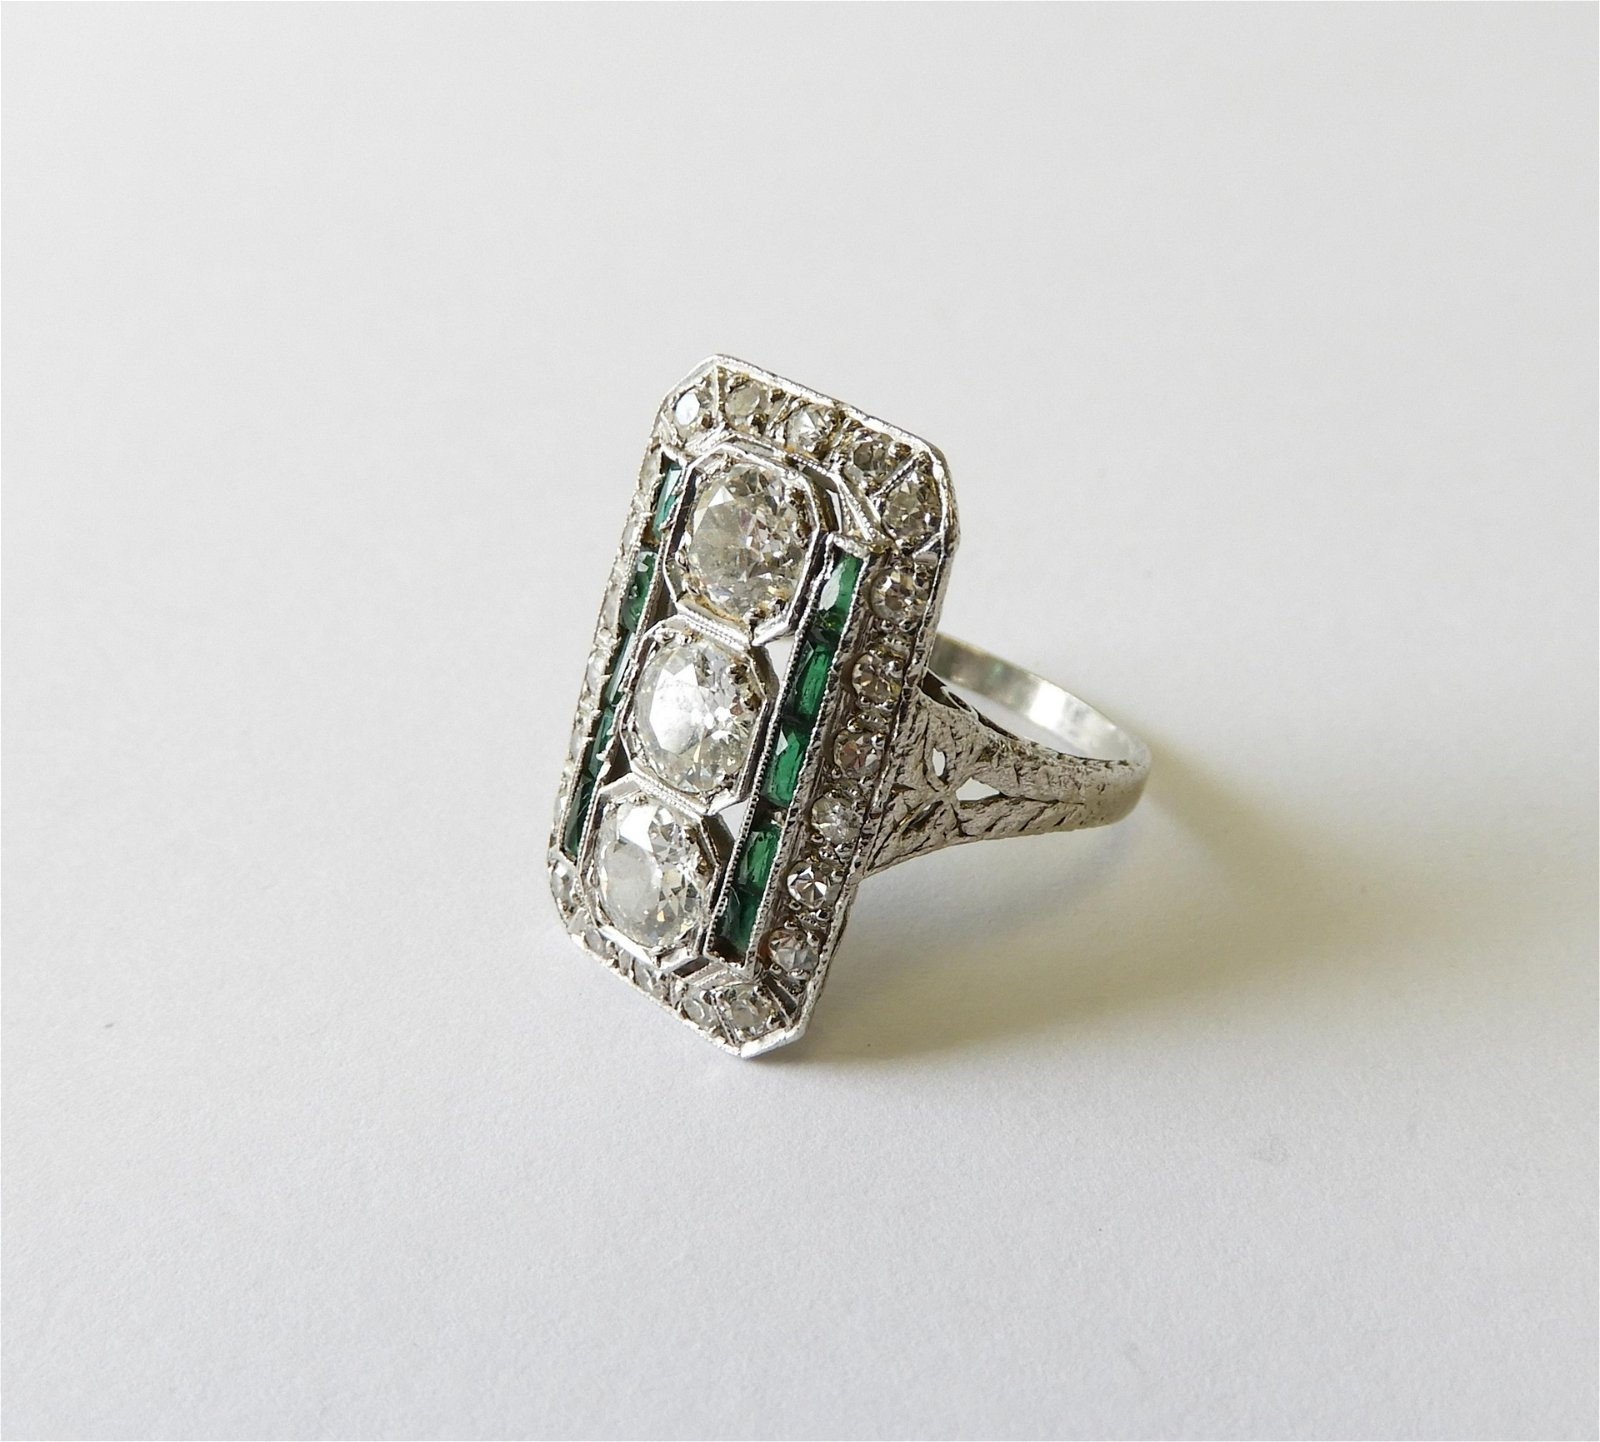 Art Deco Style Diamond & Emerald Cocktail Ring